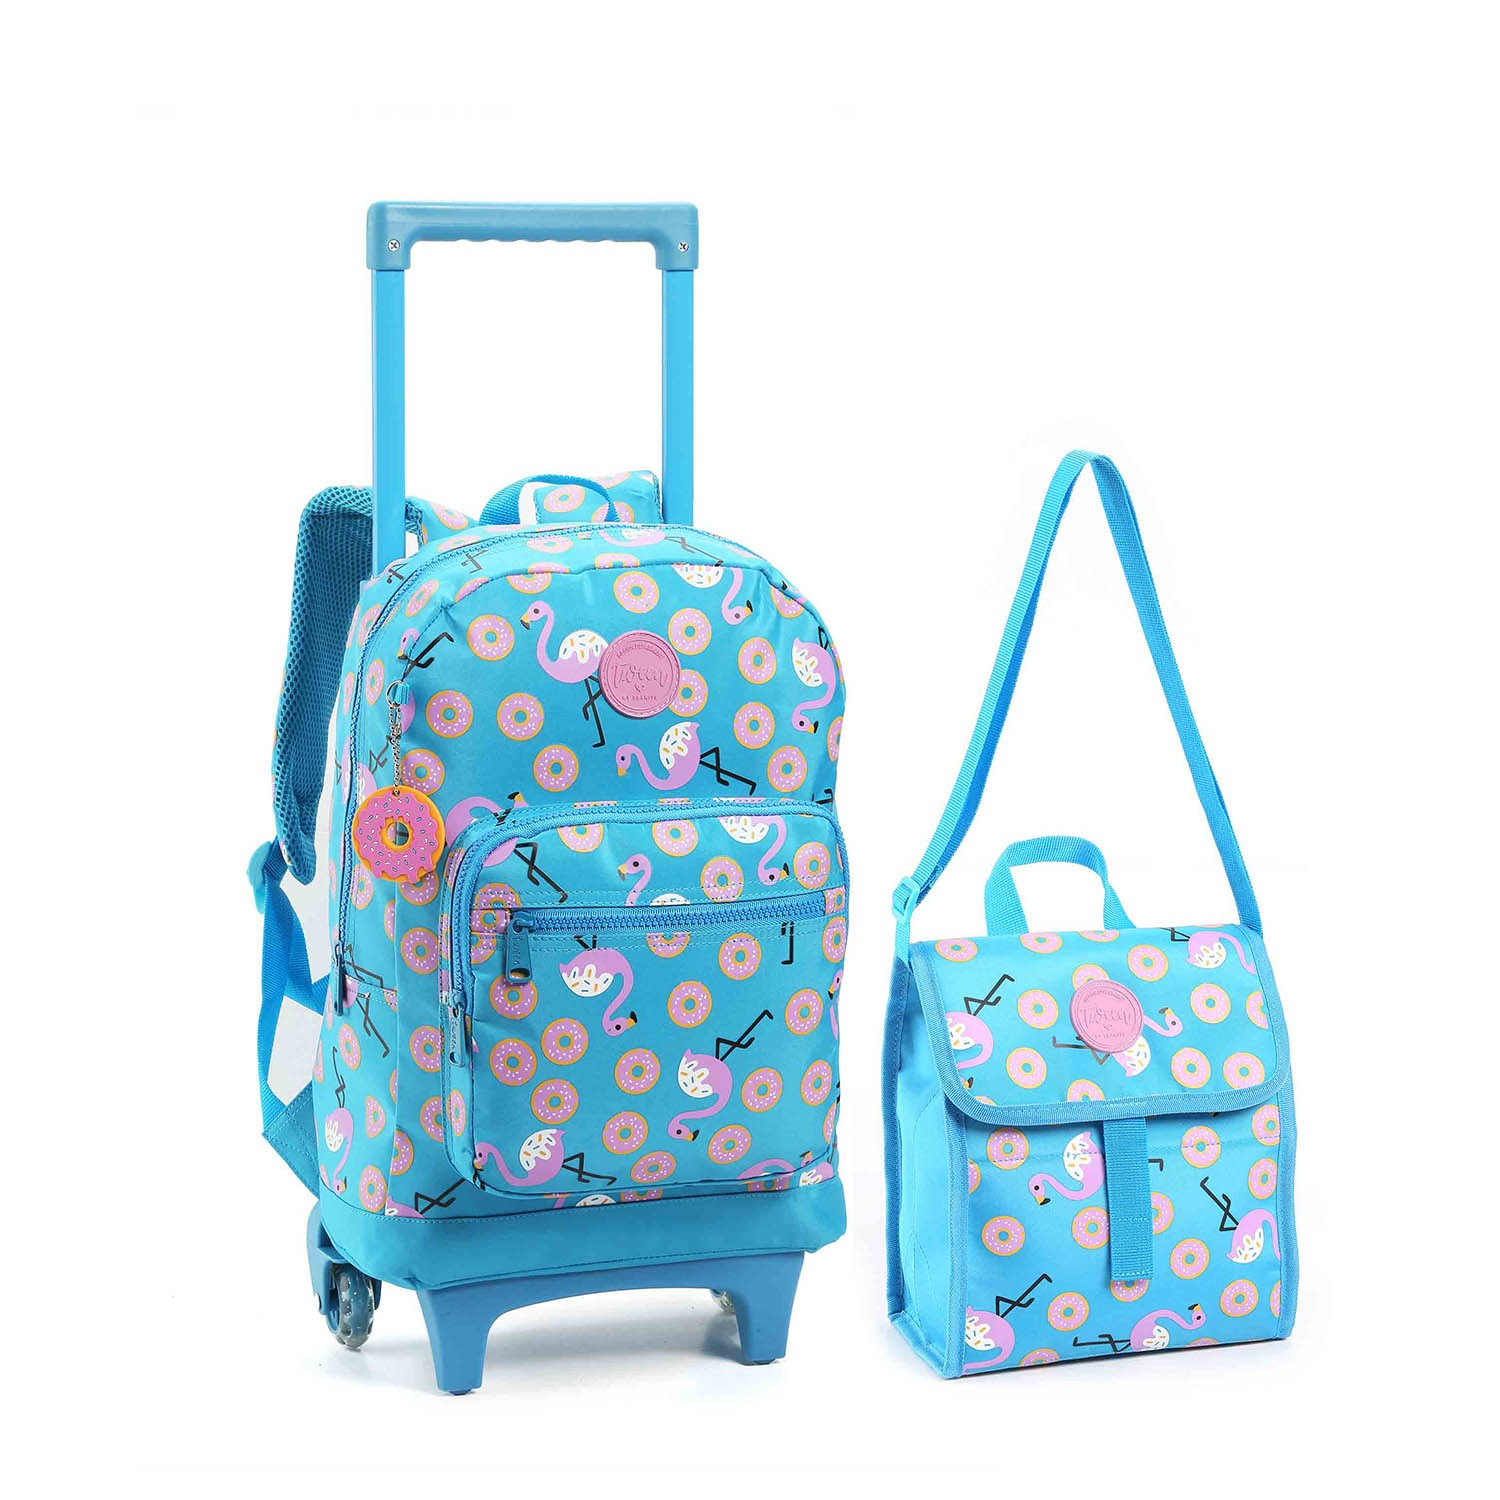 KIT ESCOLAR FEMININO FLAMINGO AZUL - SEANITE